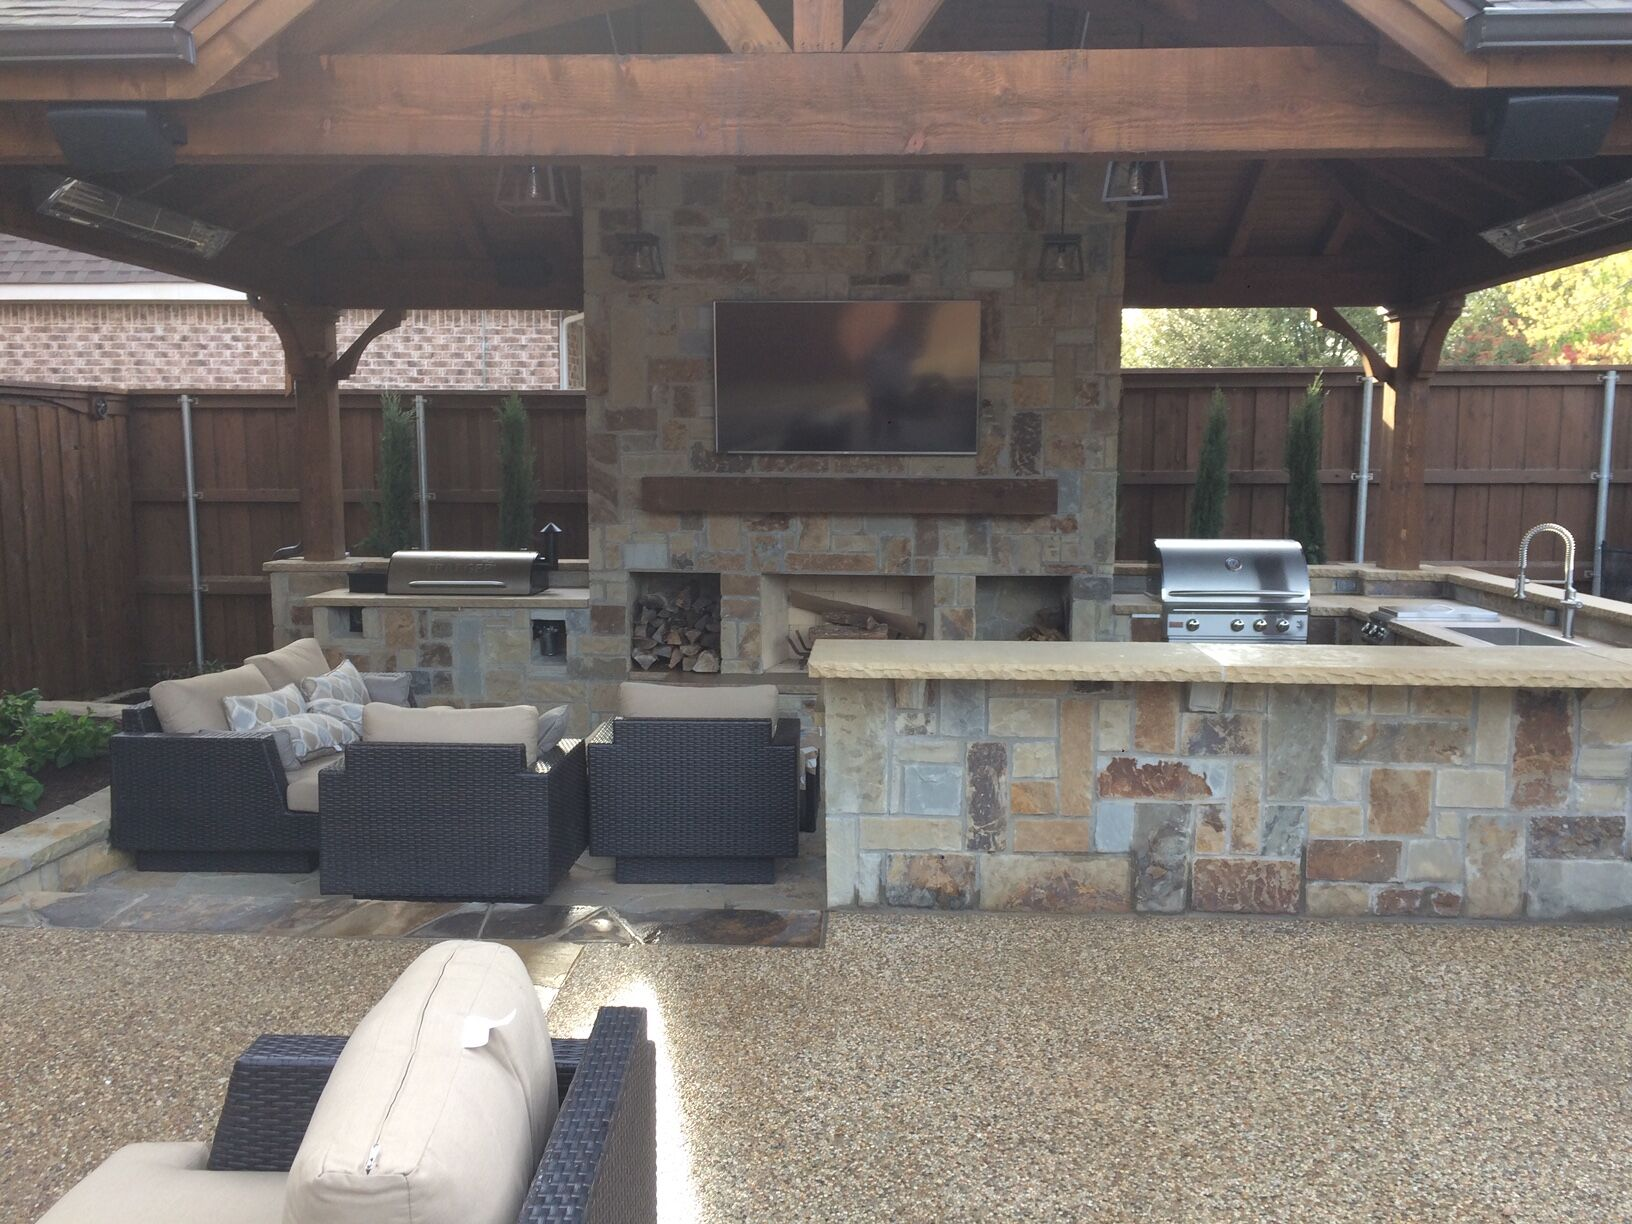 Outdoor Kitchen by Impact Landscapes LLC in Dallas, TX - 972-849-6443